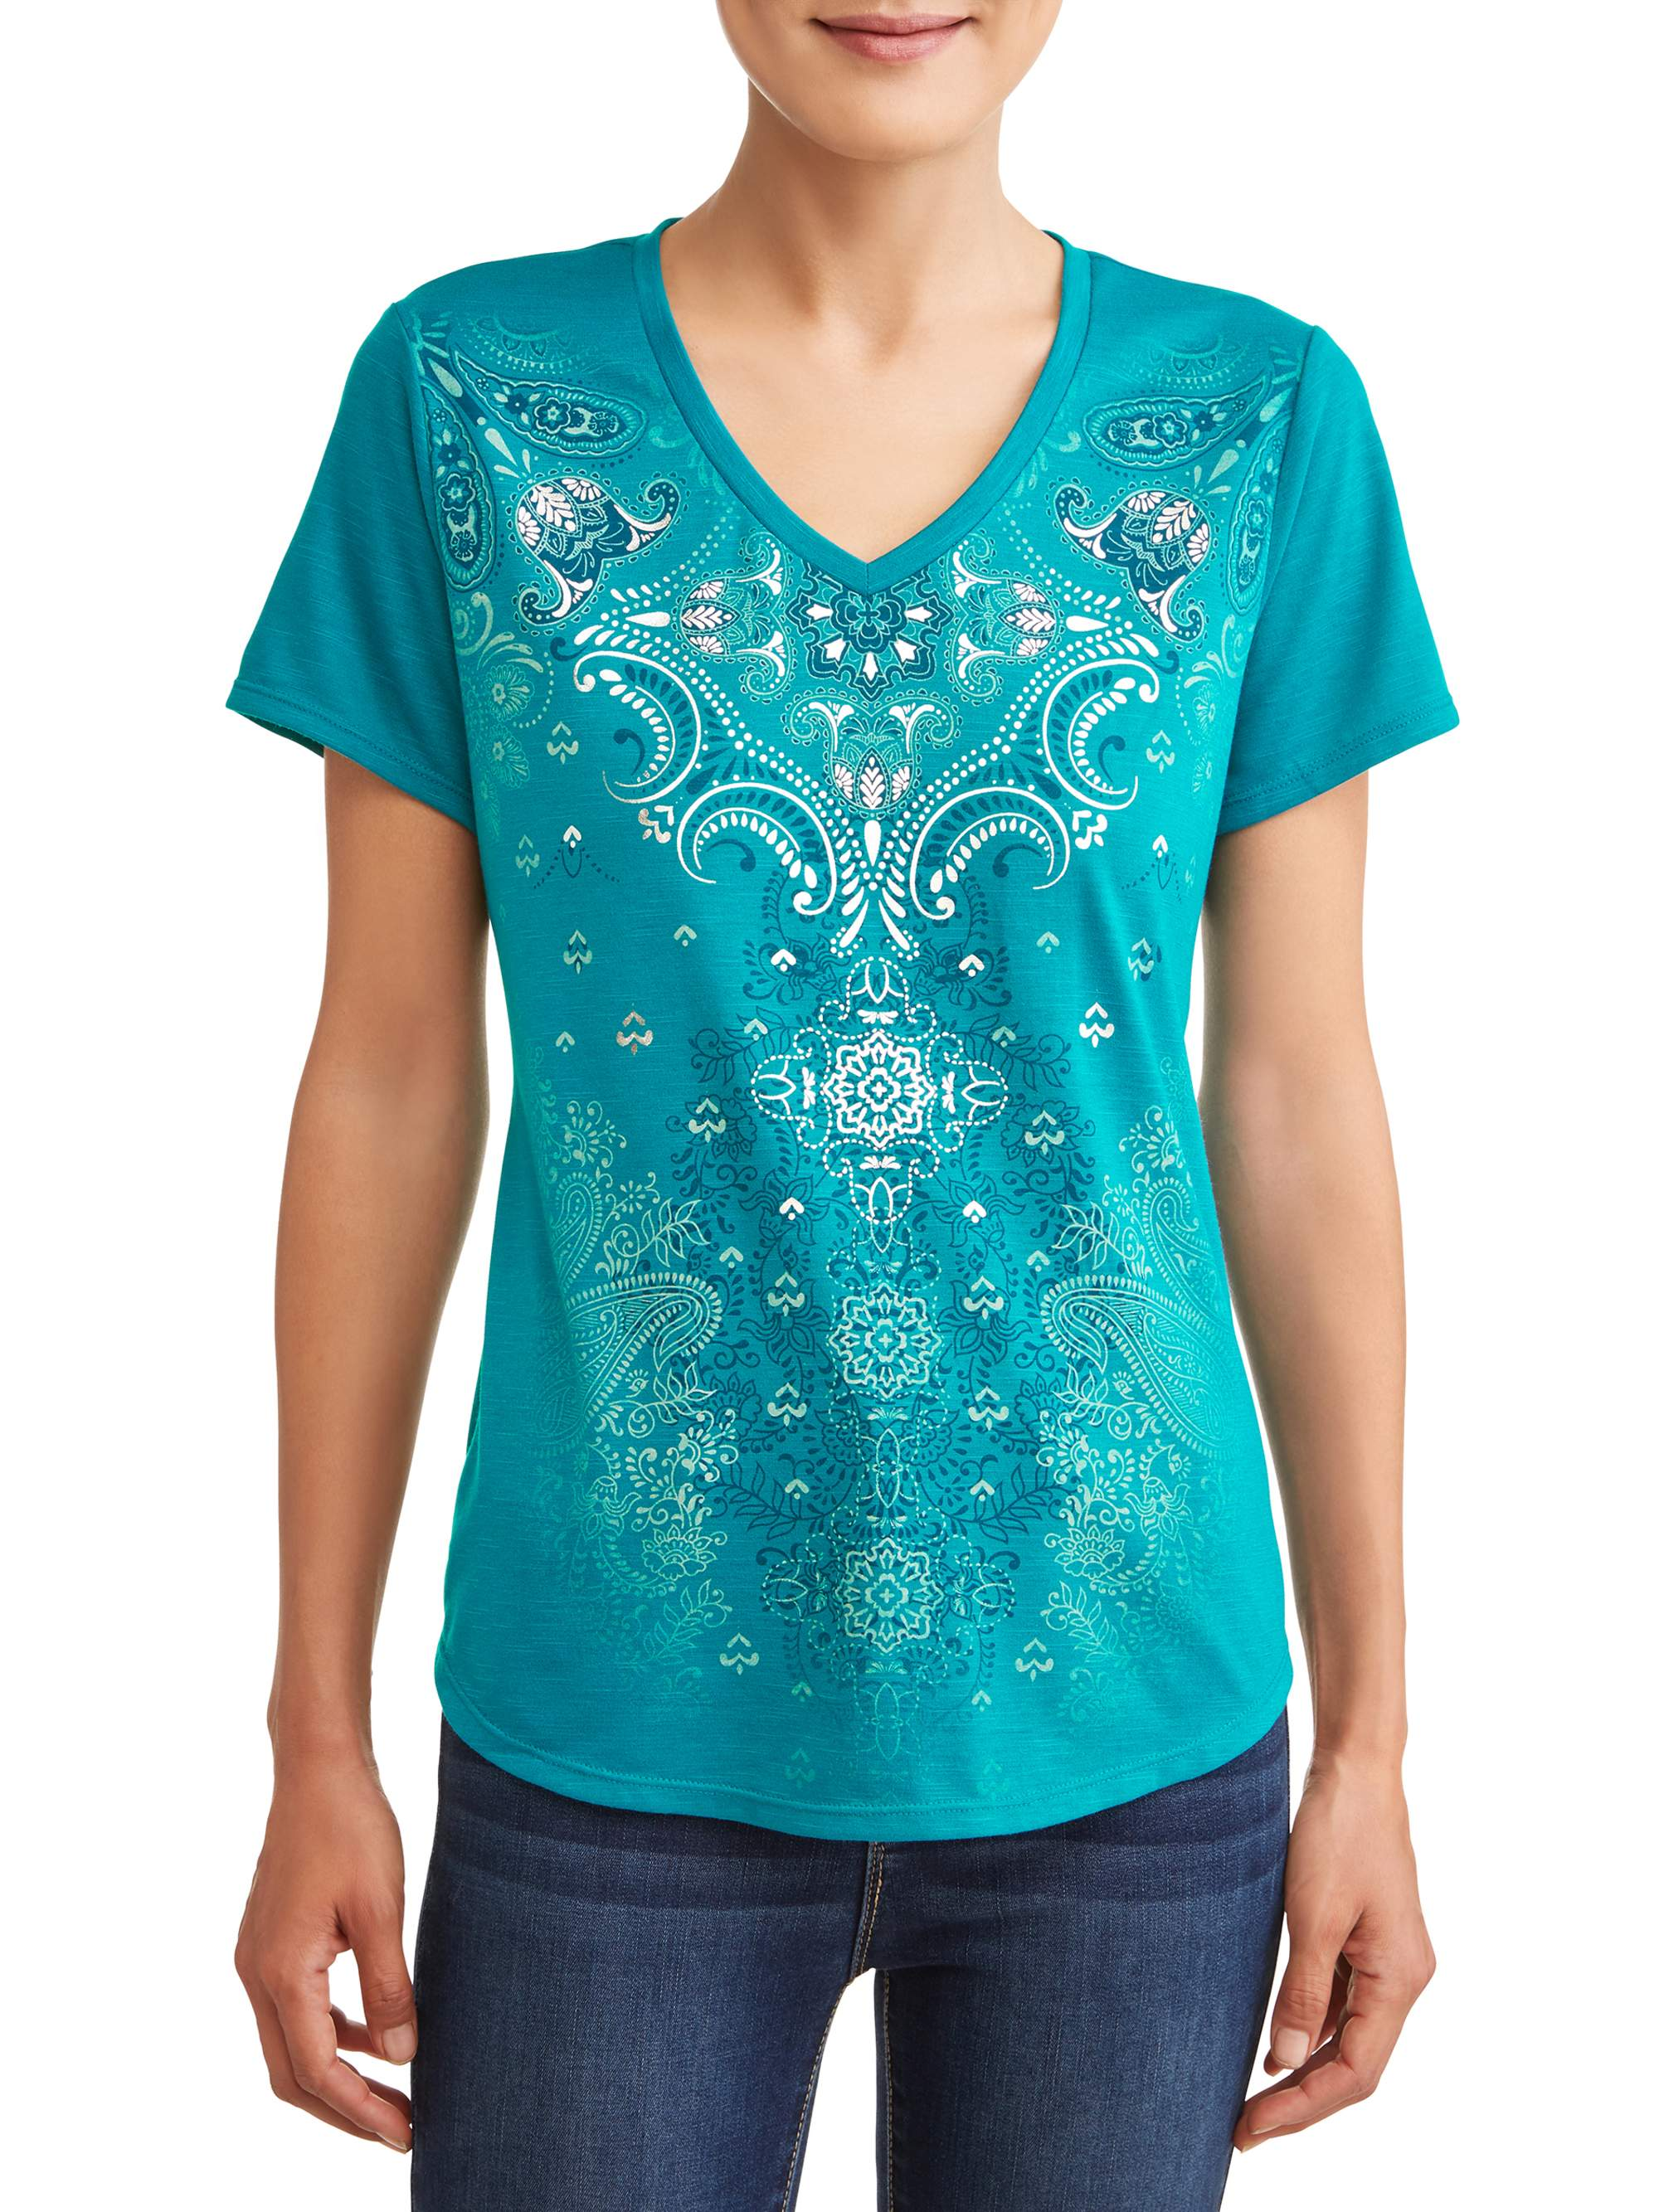 Women's Short Sleeve Sublimation T-Shirt